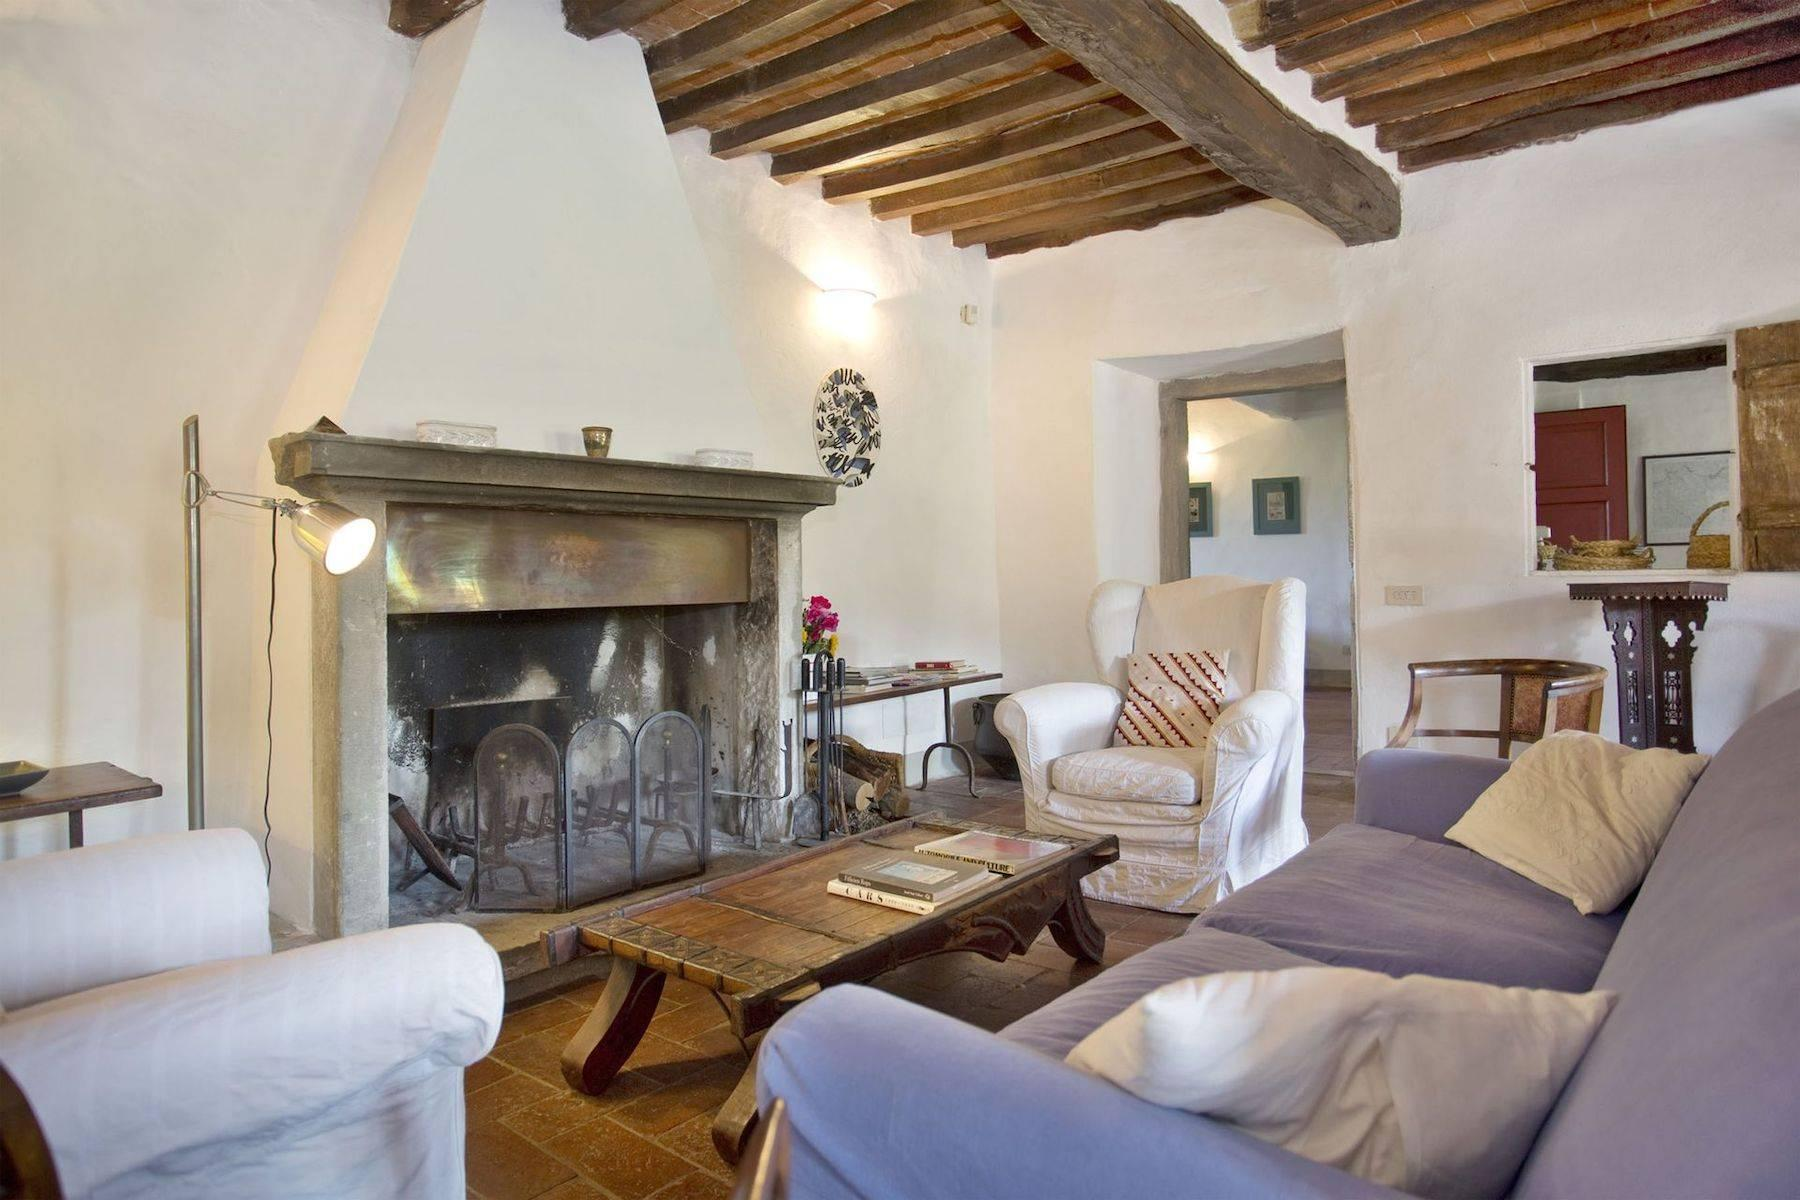 Beautiful charming countryside 6 bedroom villa with pool in Bagno a Ripoli - 7